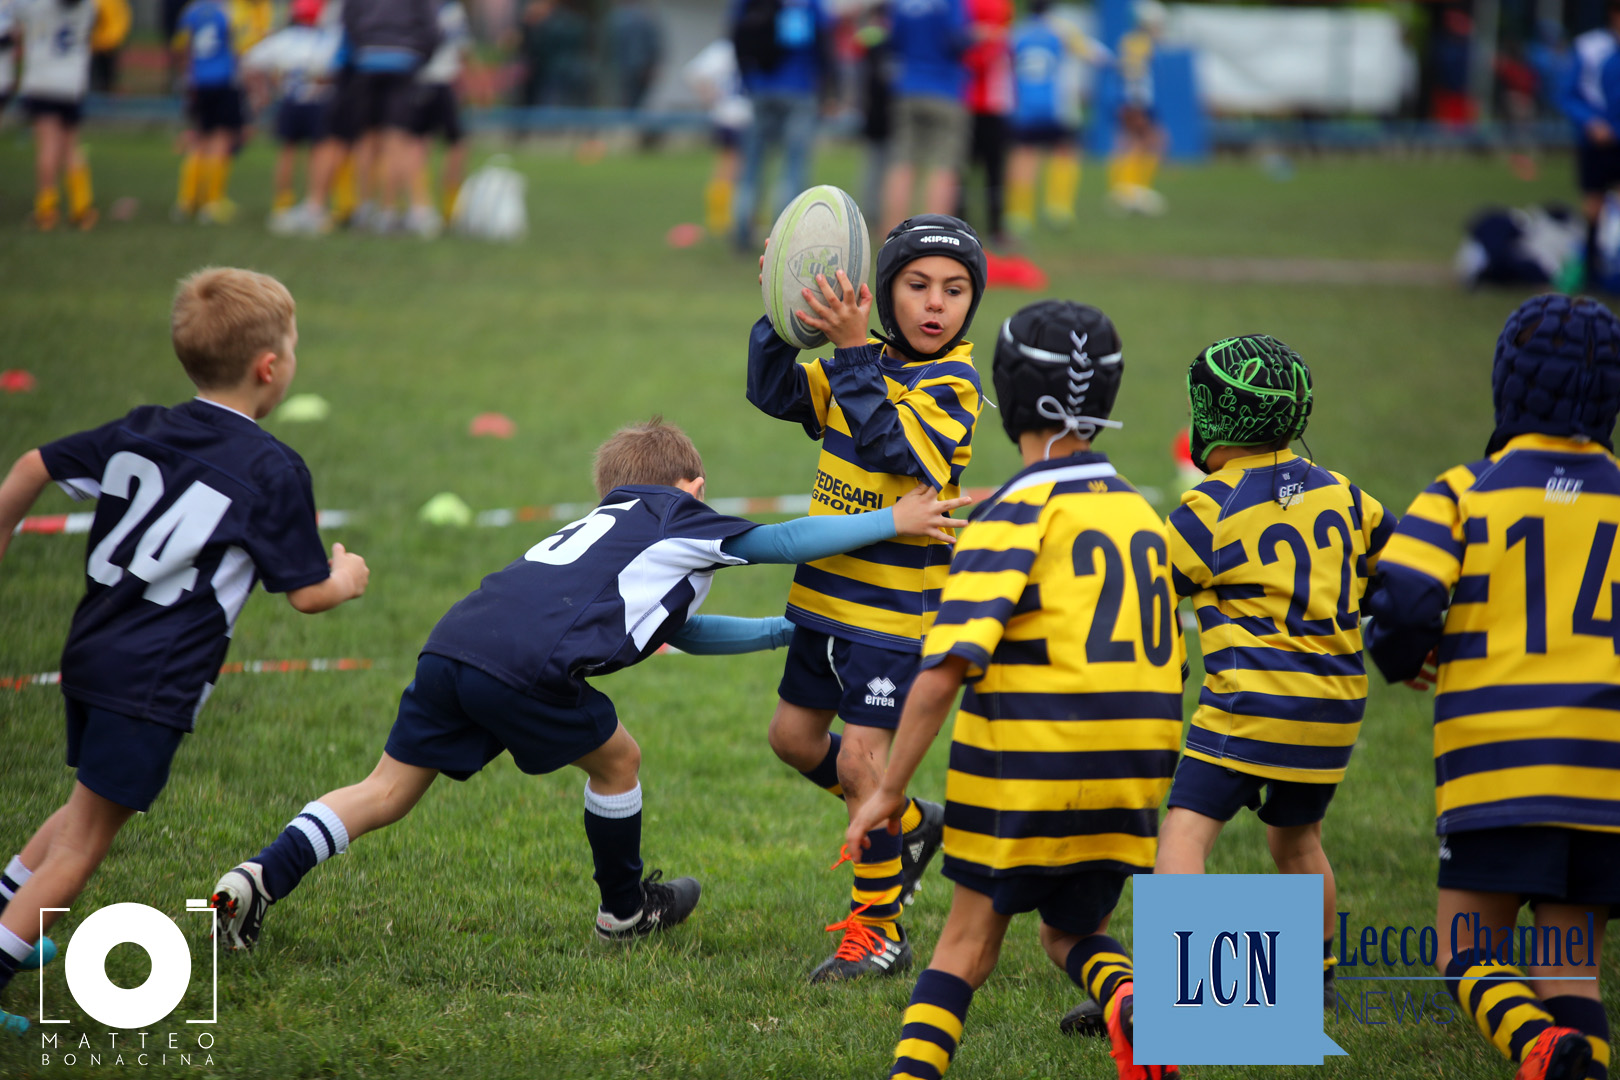 Rugby Lecco Torneo Internazionale 2018 Under 6 Cus Pavia (4)